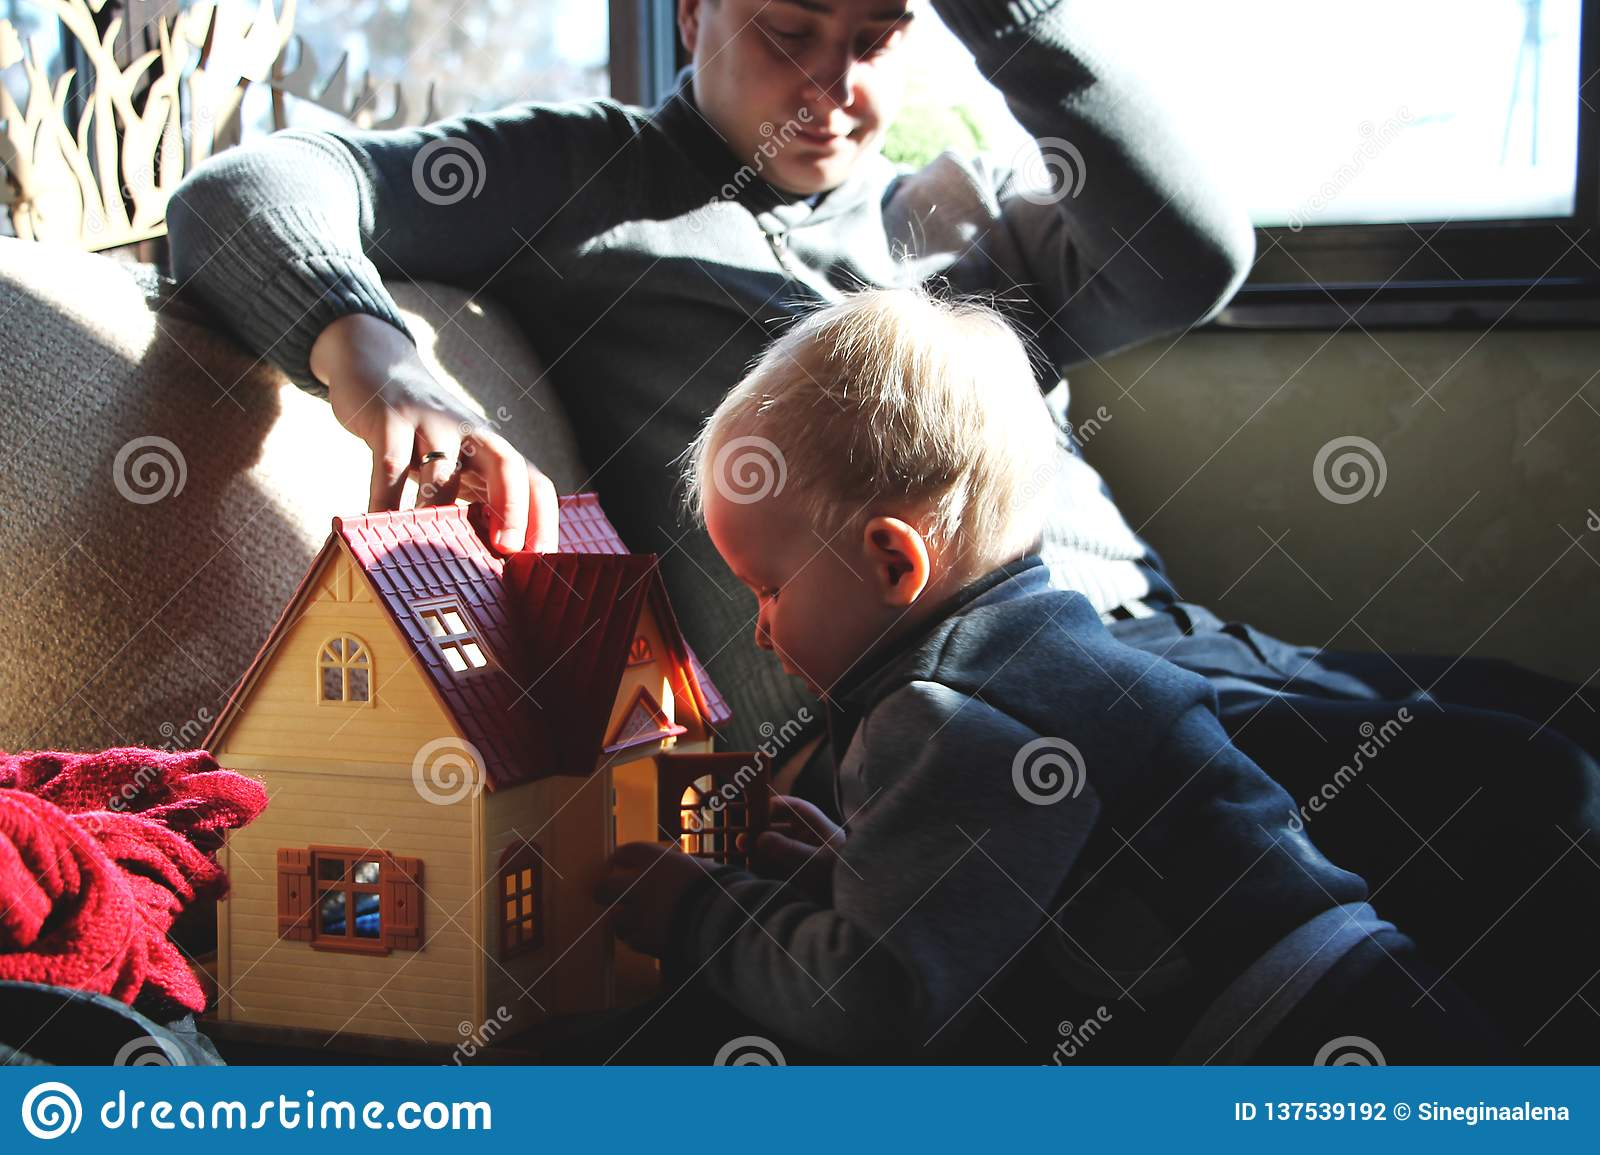 Dad and son are playing in the doll house